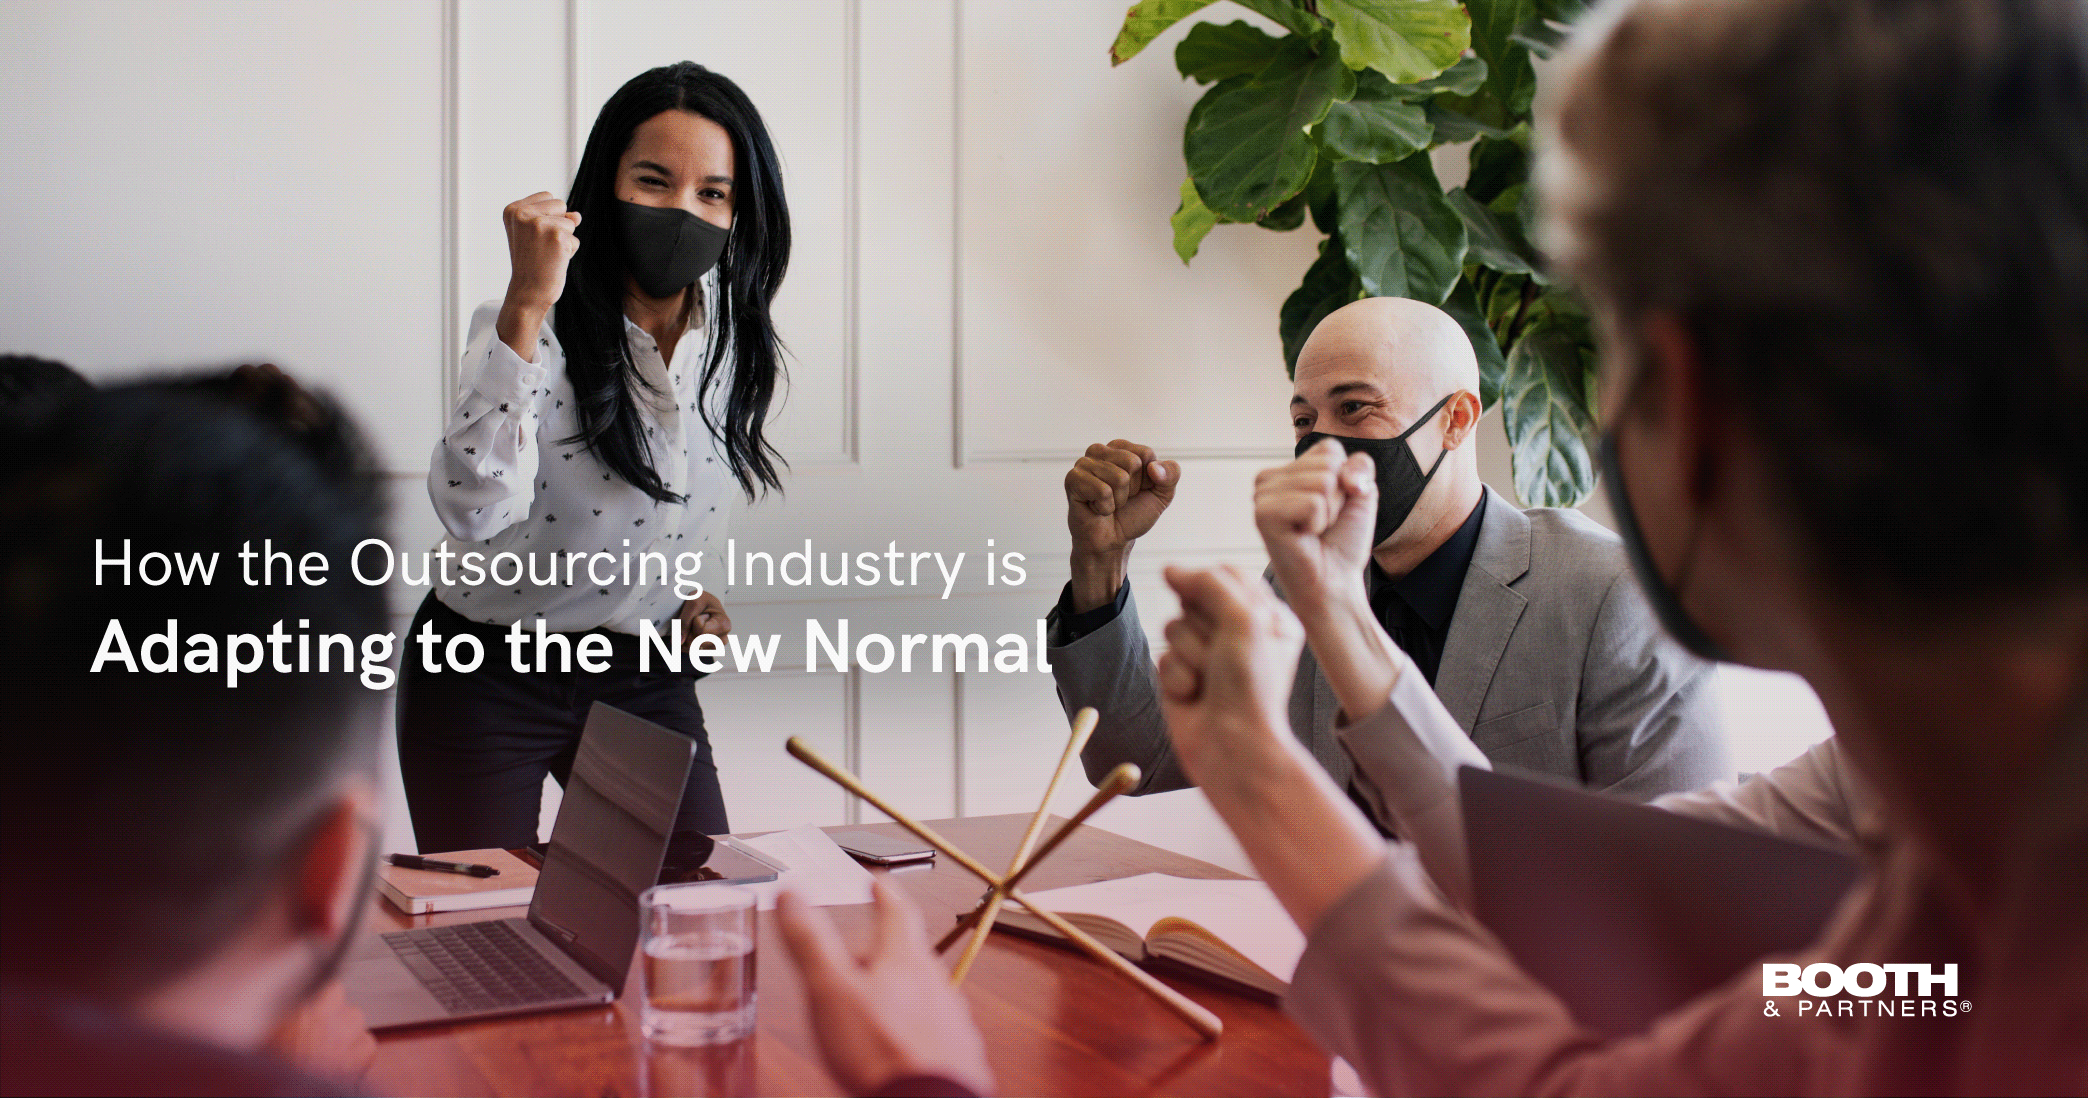 How the Outsourcing Industry is Adapting to the New Normal